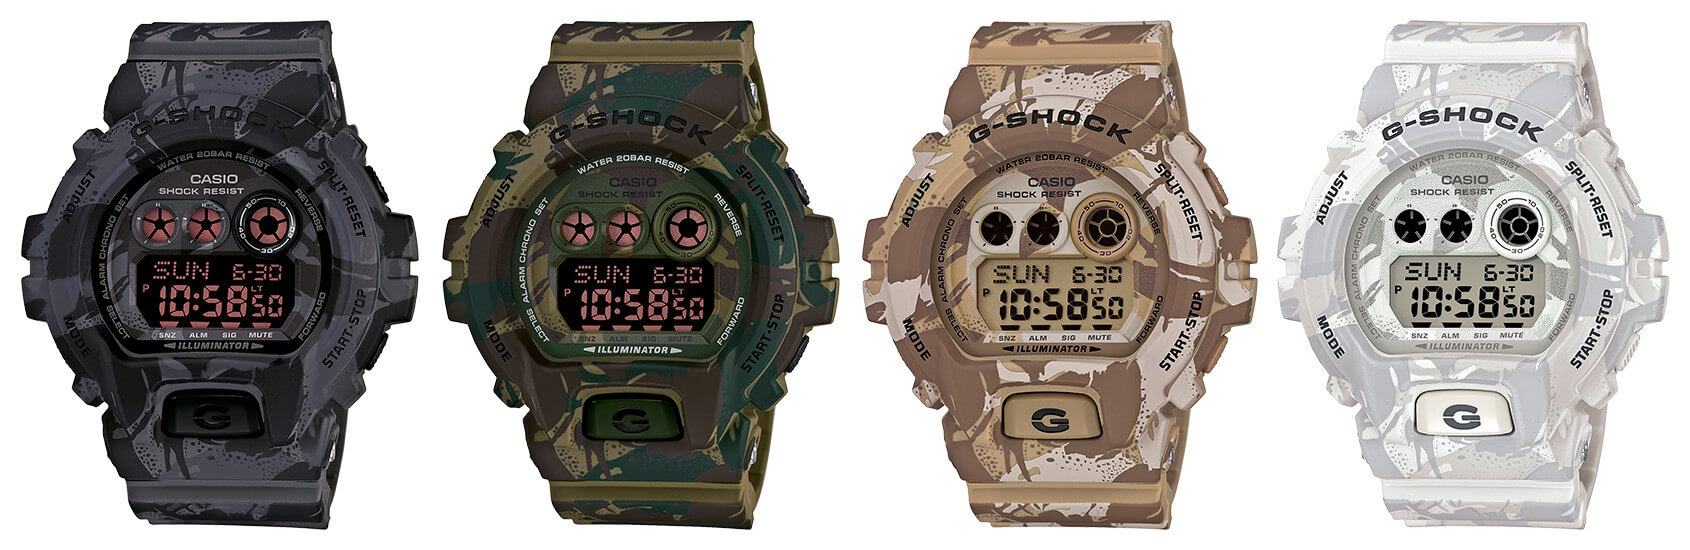 a300c1750f4c The Top Camouflage G-Shock Watches – G-Central G-Shock Watch Fan Blog